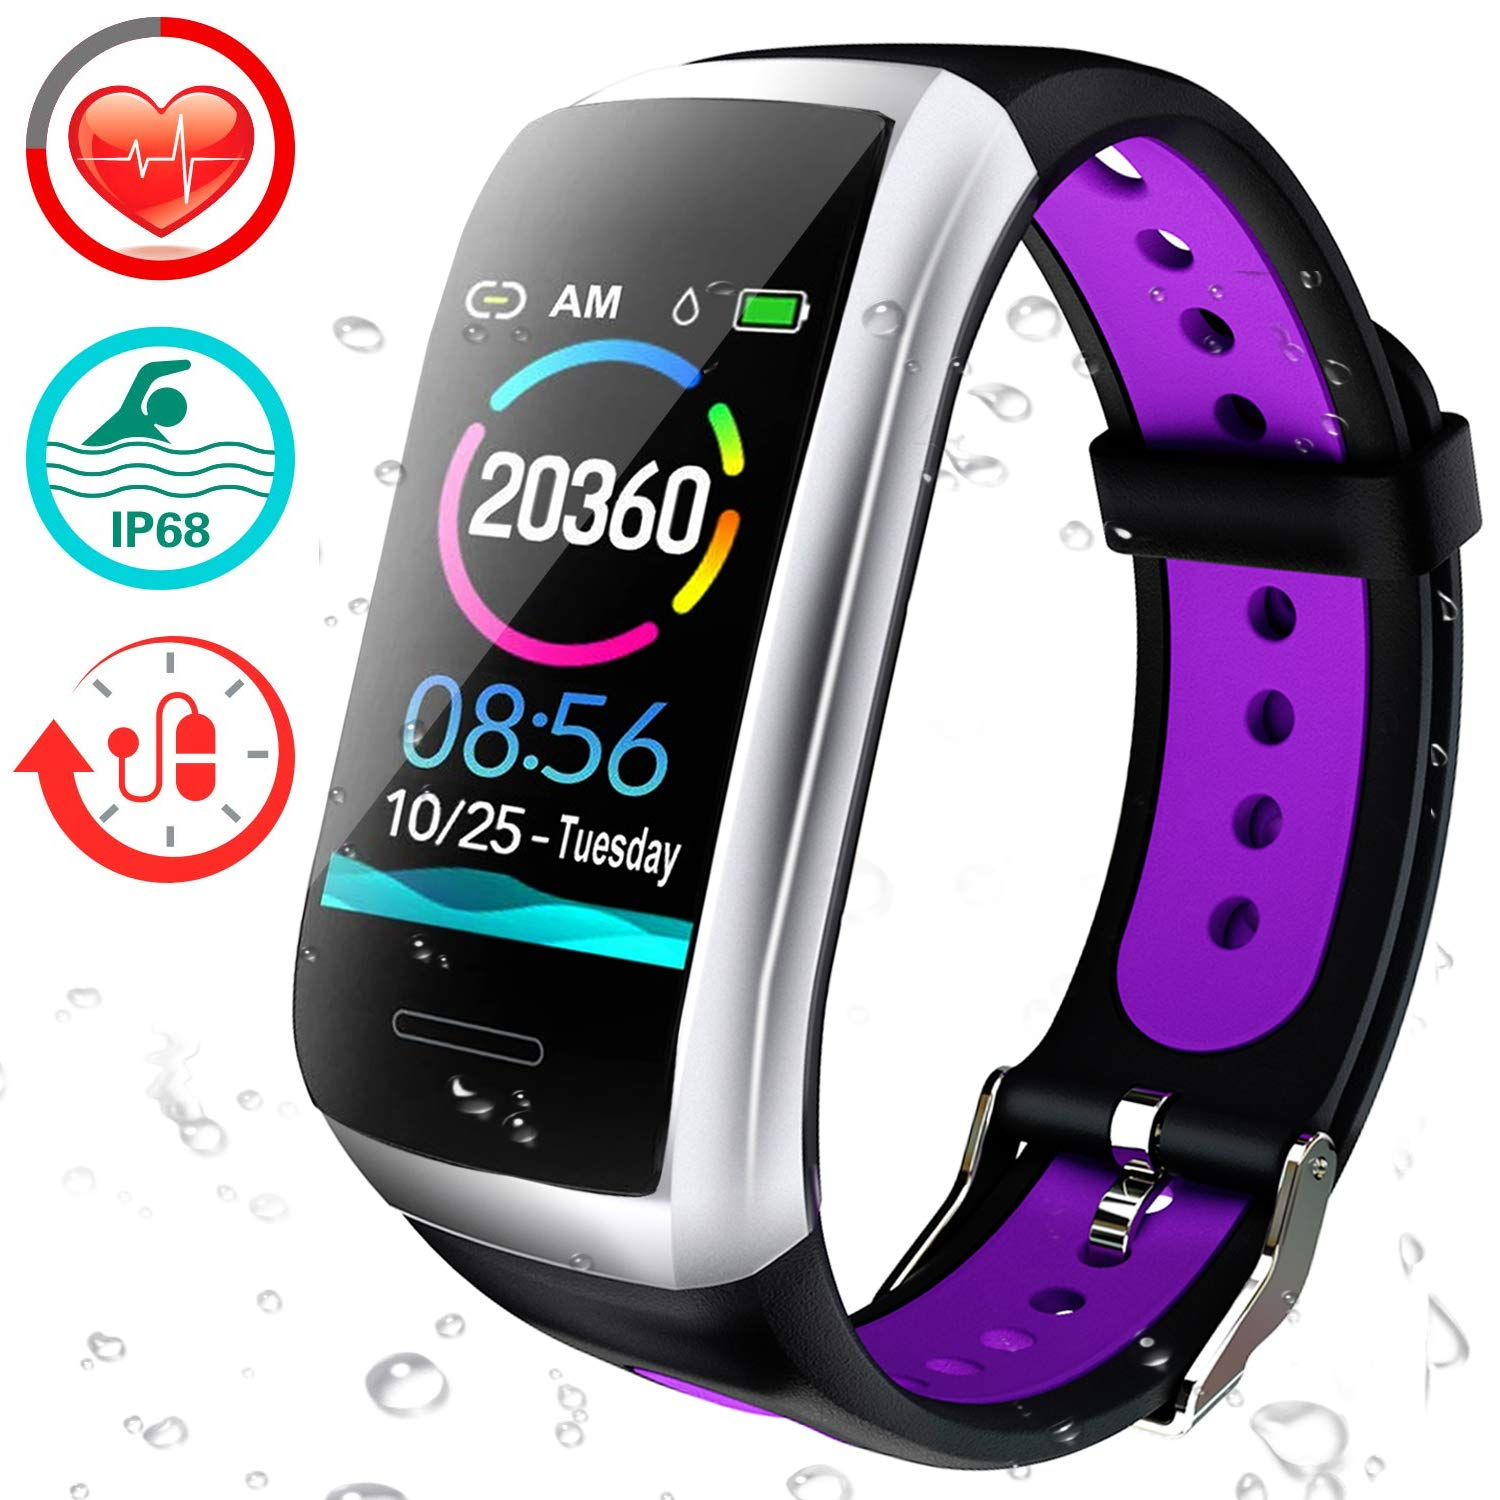 feifuns Fitness Tracker, 1.14 Color Screen Activity Health Tracker IP68 Waterproof Smart Watch with Heart Rate Blood Pressure Calories Pedometer Sleep Monitor Call SMS Remind for Women Men